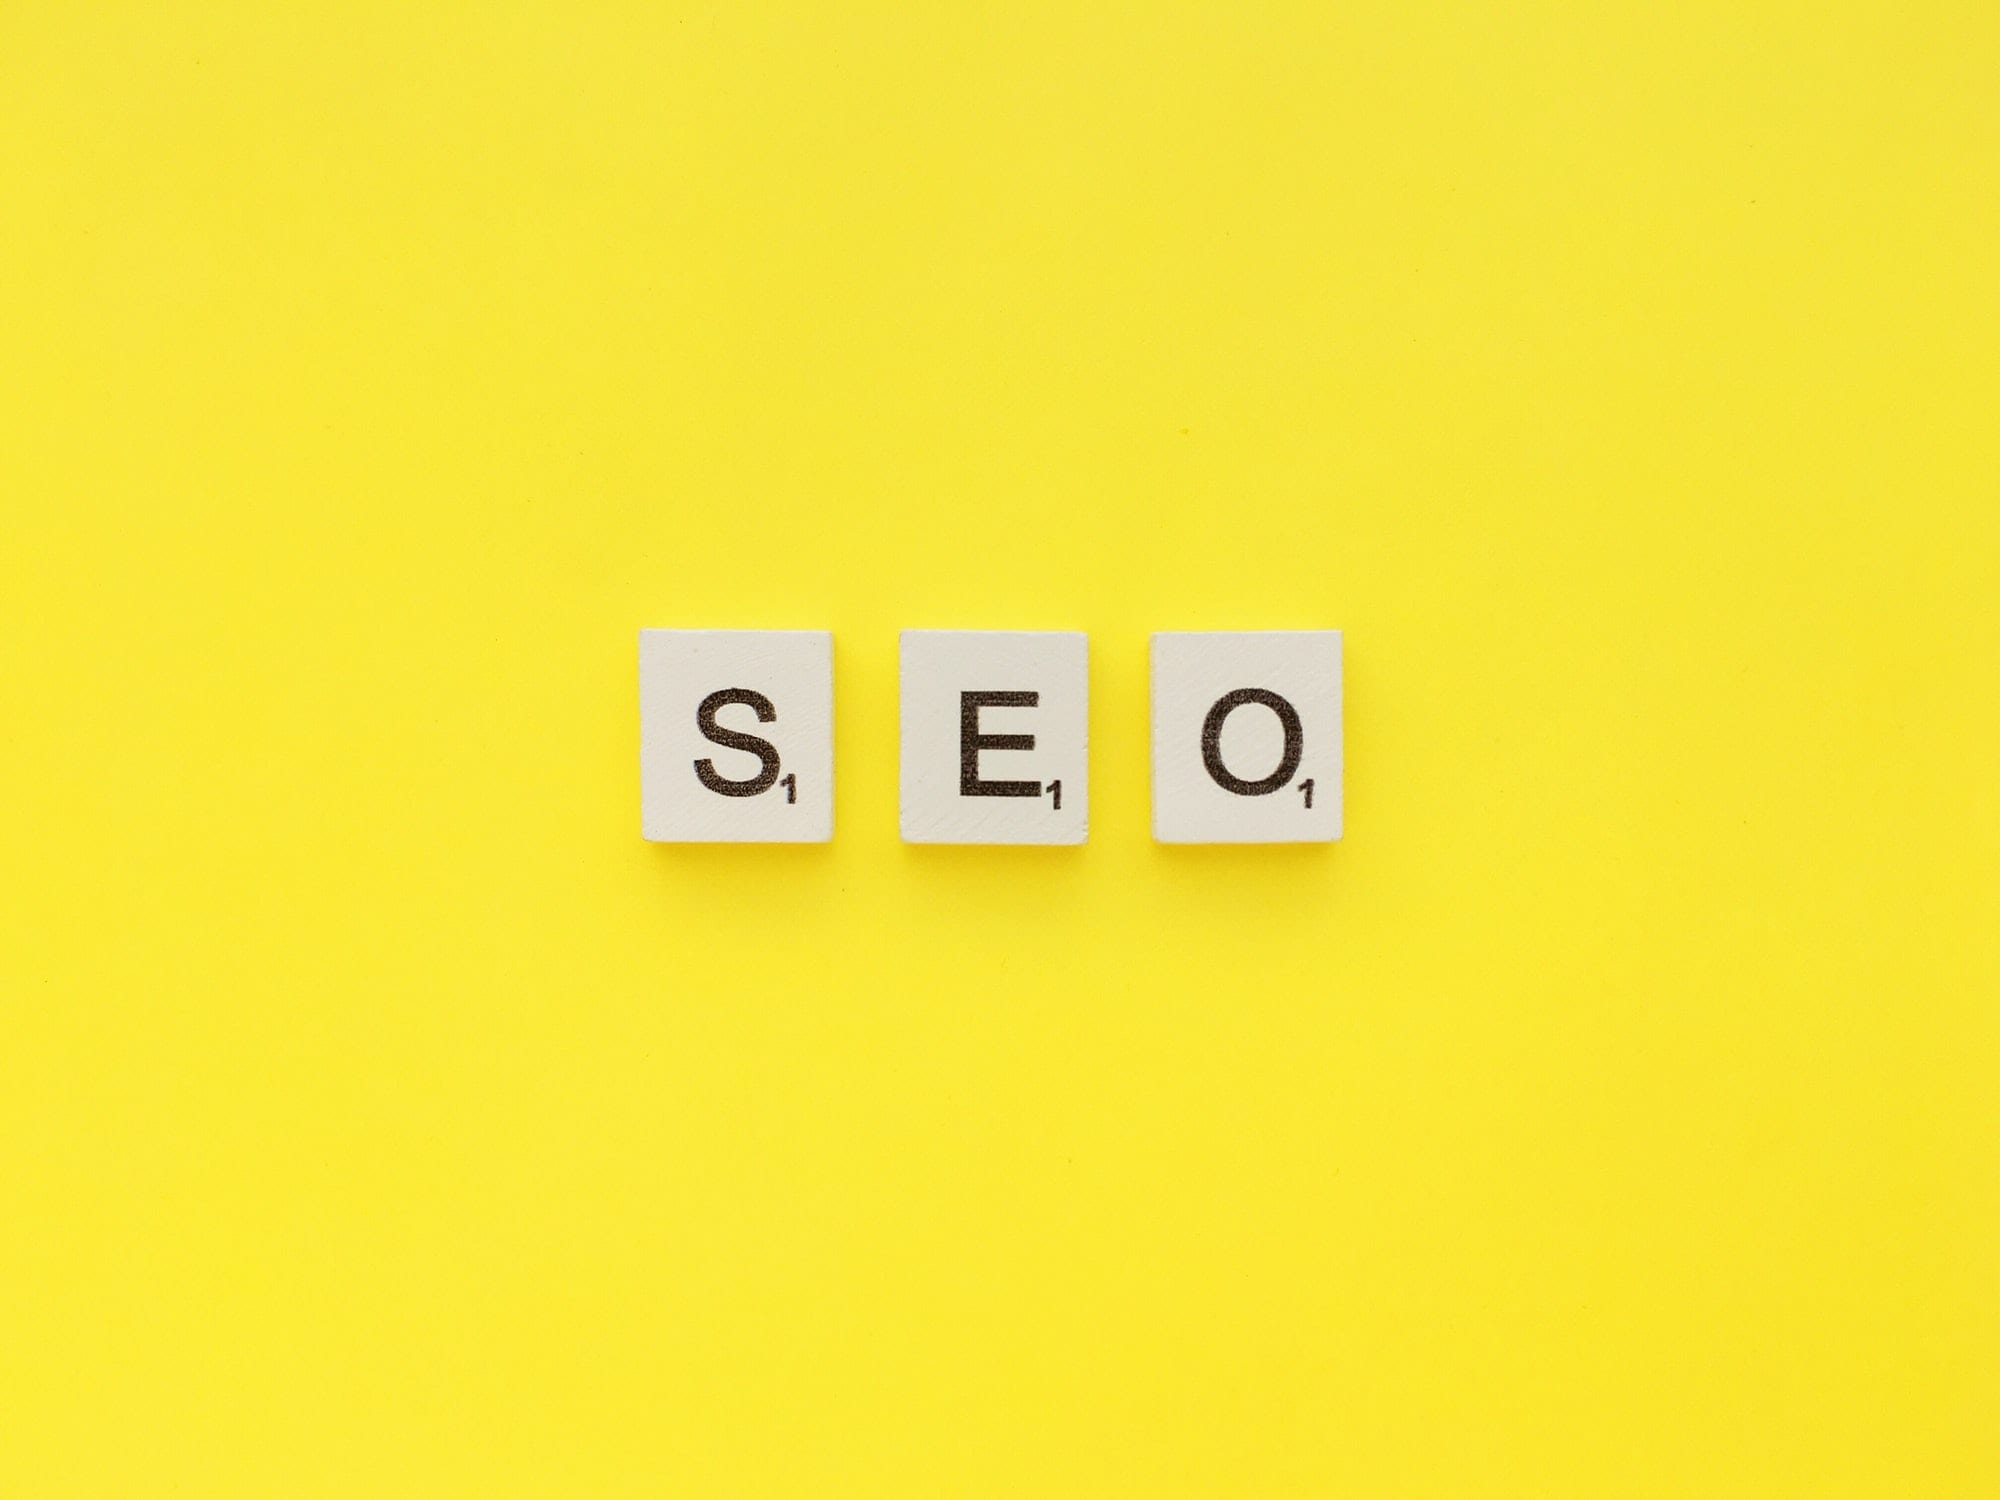 SEO scrabble letters word on a yellow background